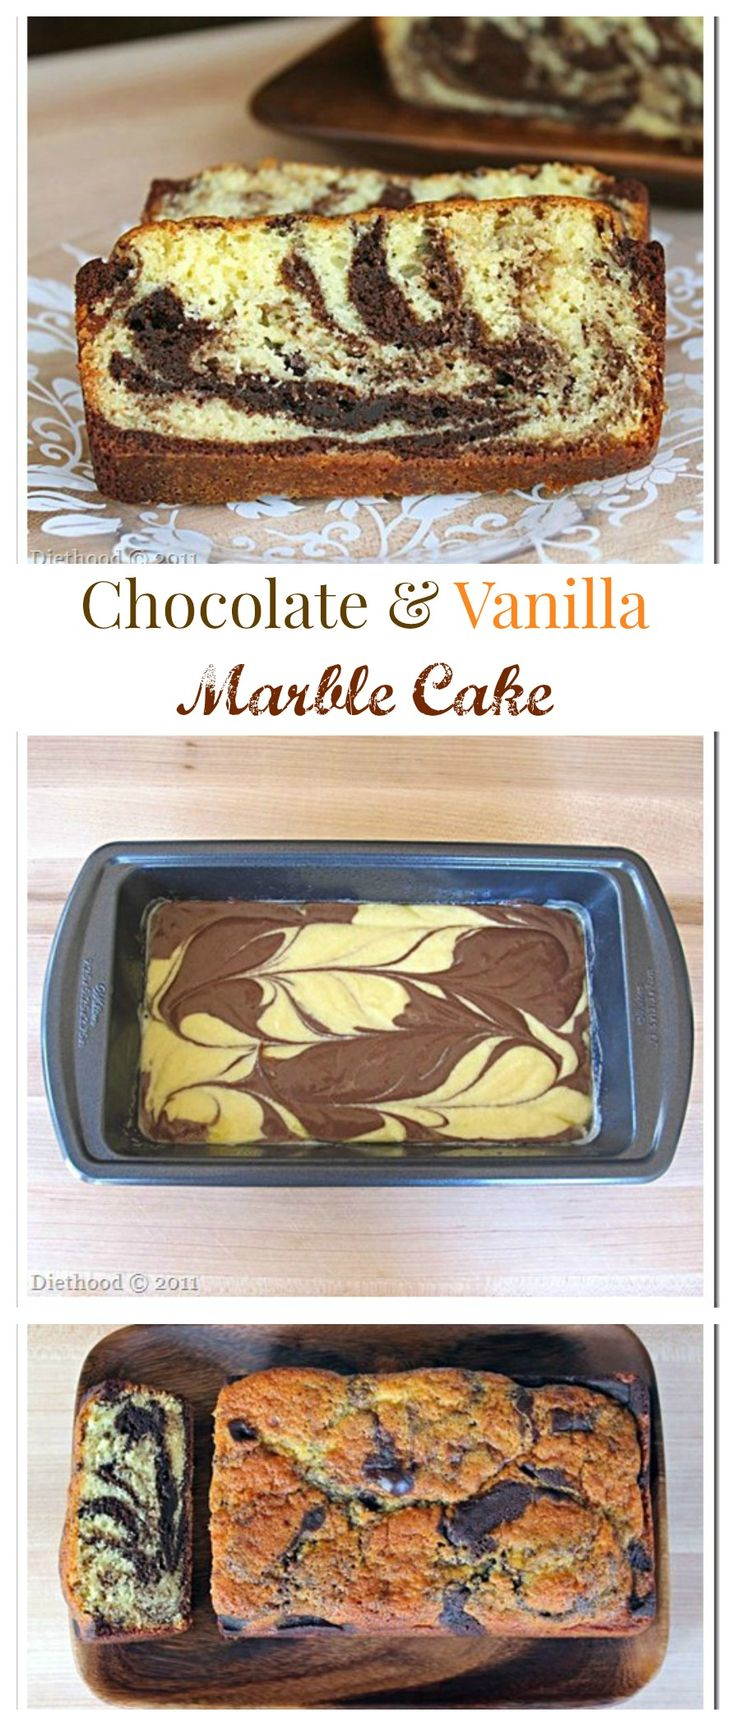 Chocolate and Vanilla Marble Cake - Super moist spongy cake that's a perfect balance between sweet and buttery!